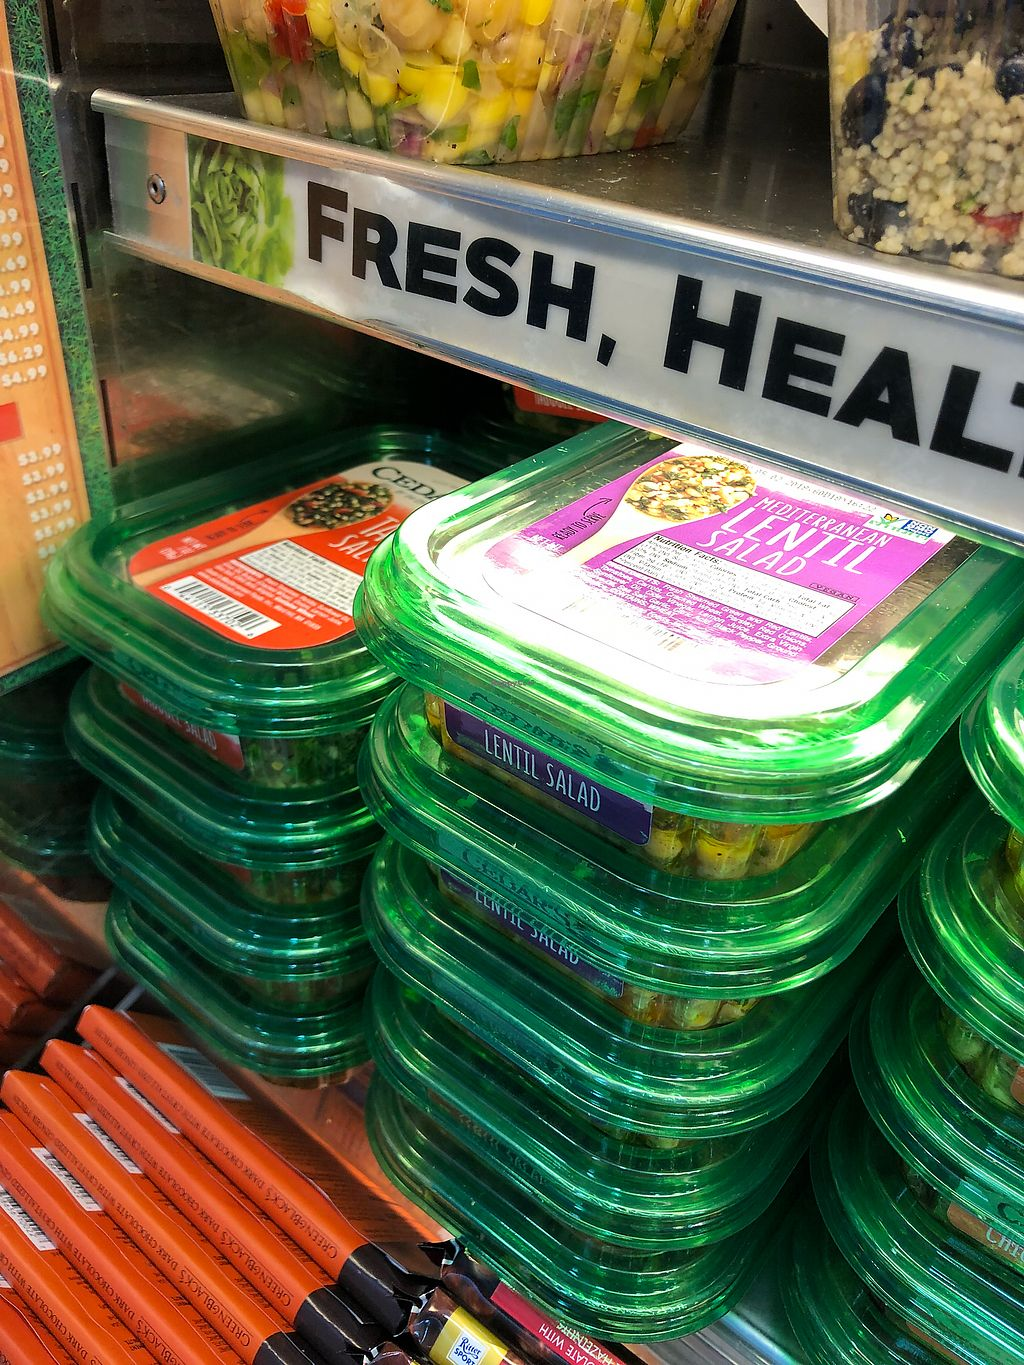 """Photo of Fresh Market on the Go - Airport  by <a href=""""/members/profile/Knauji82"""">Knauji82</a> <br/>Salad <br/> April 18, 2018  - <a href='/contact/abuse/image/105152/387426'>Report</a>"""